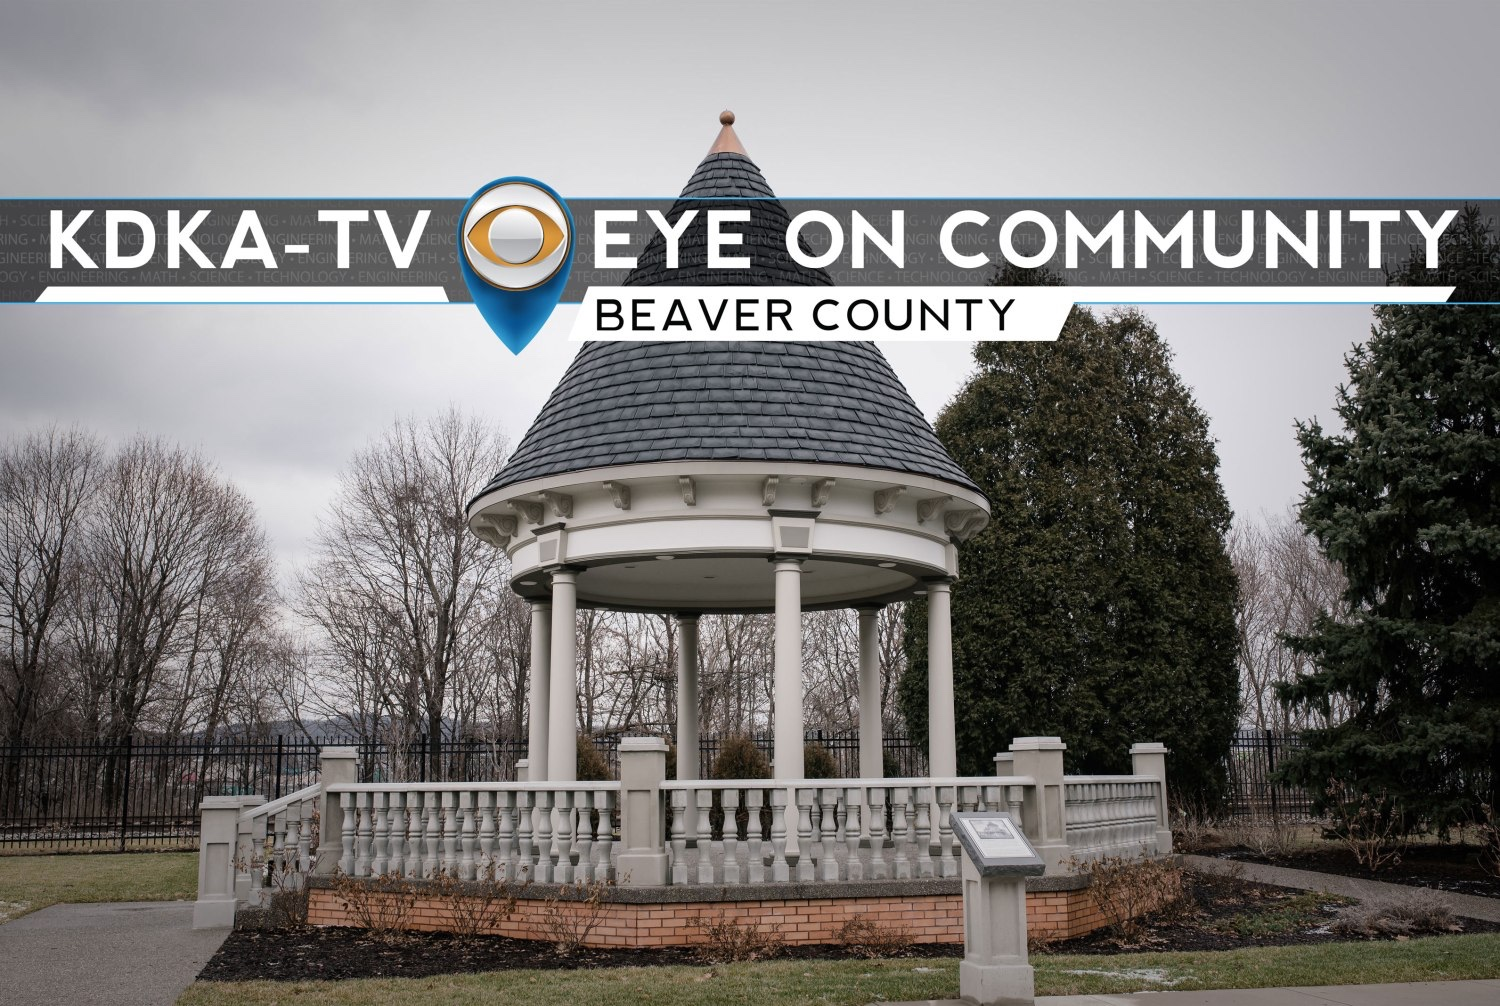 KDKA TV – Eye on Beaver County